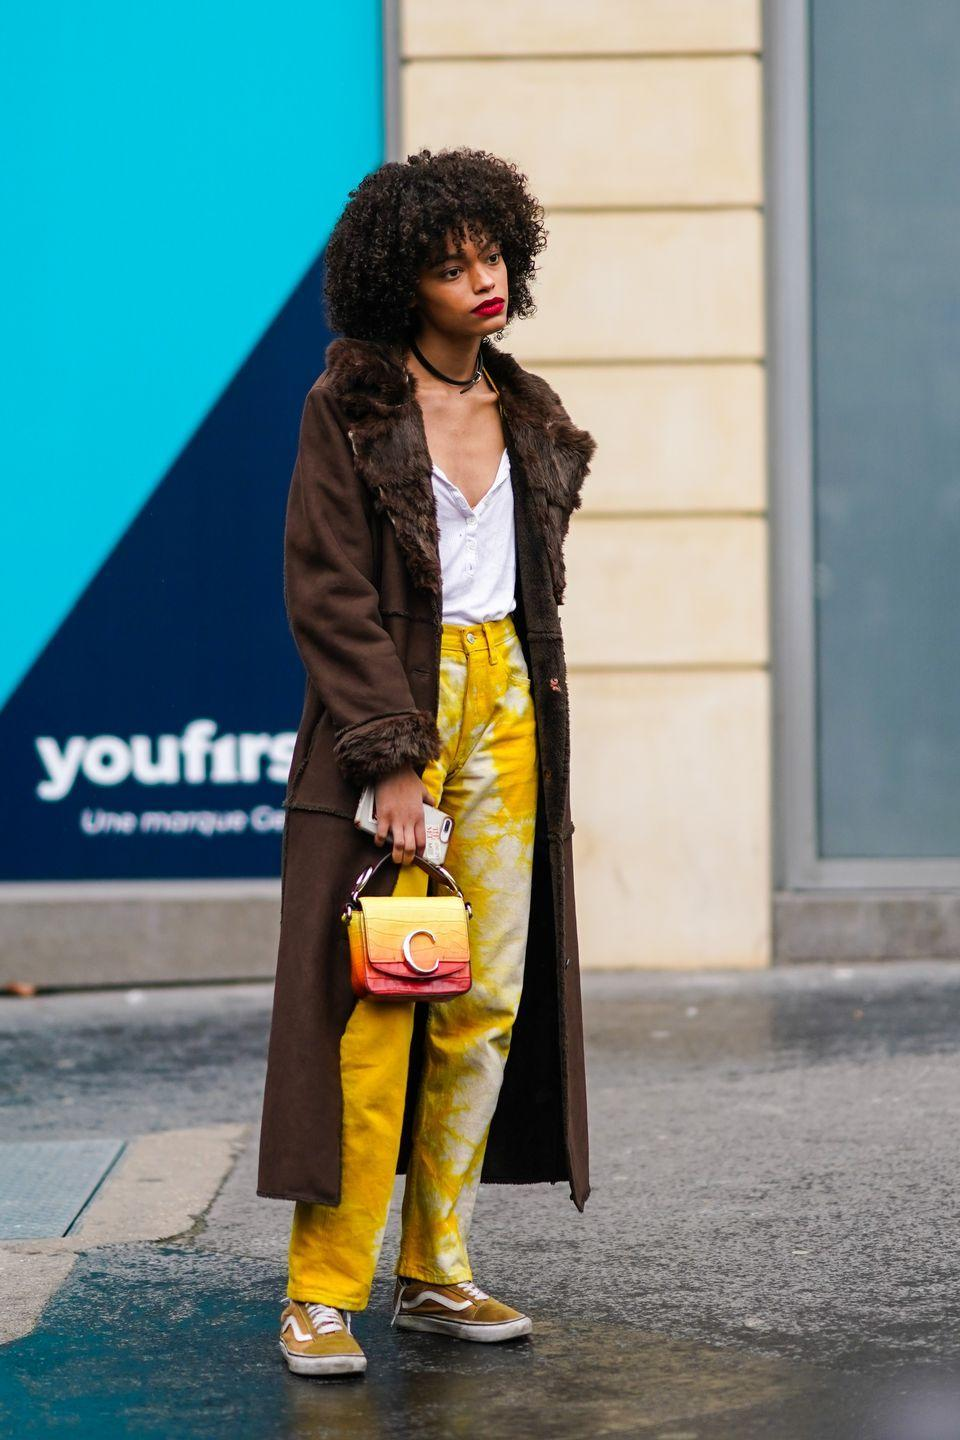 <p>Tie-dye had a huge moment this past year, and though the summer has cooled, we're not ready to completely say goodbye to the print just yet. So we'll be finding subtle ways to flaunt this style with a few additions to our handbag collections.</p>